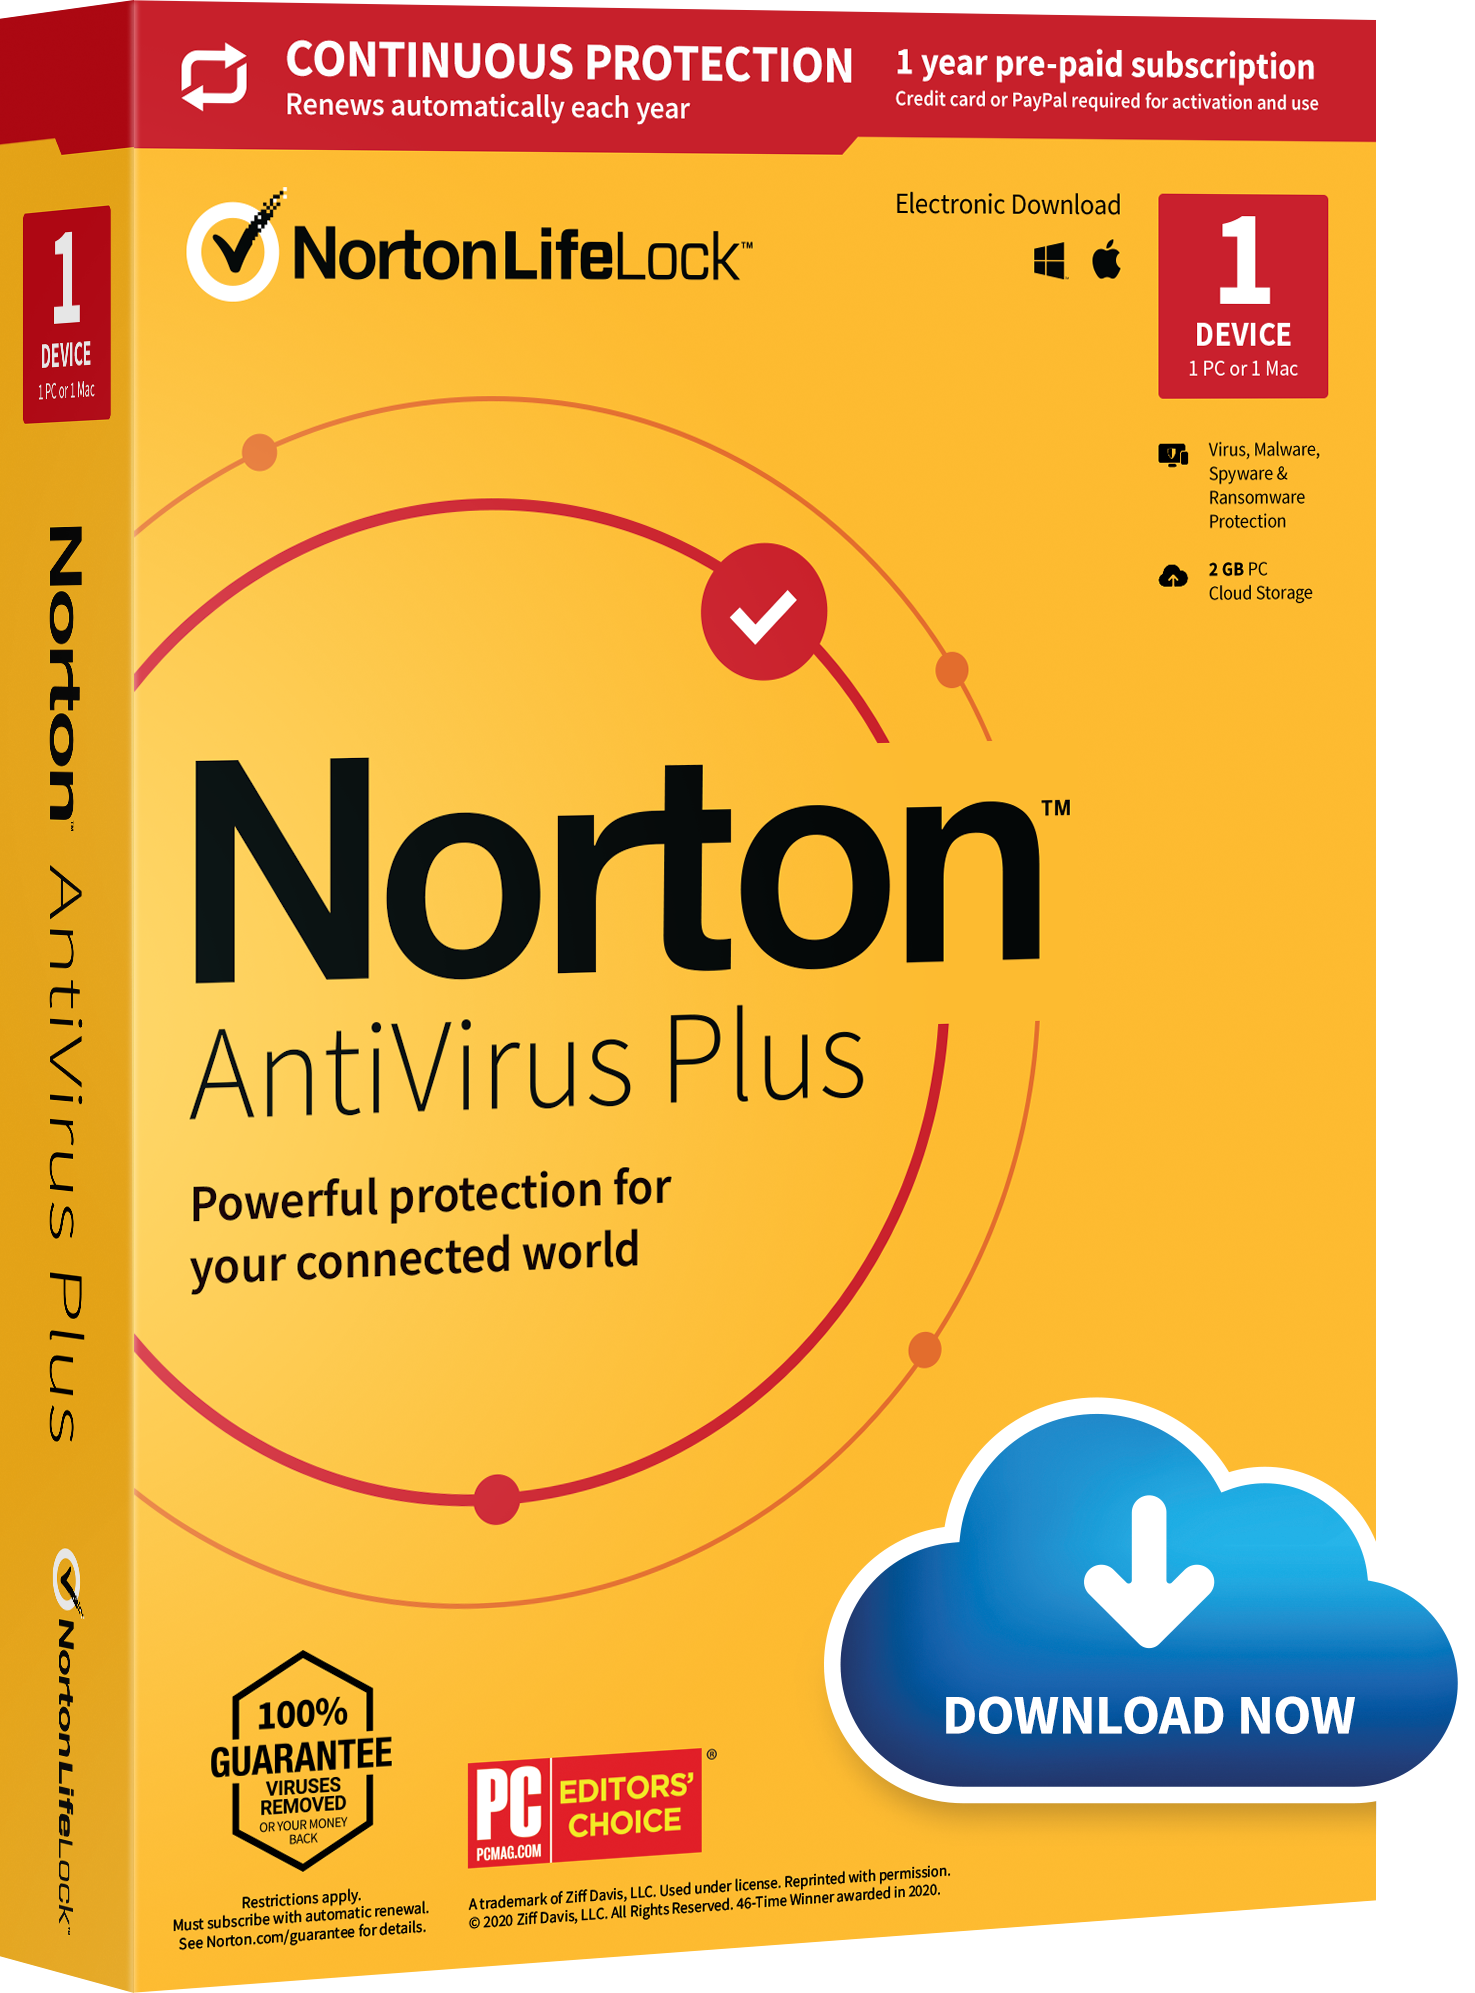 Norton AntiVirus Plus US Komdigit.com